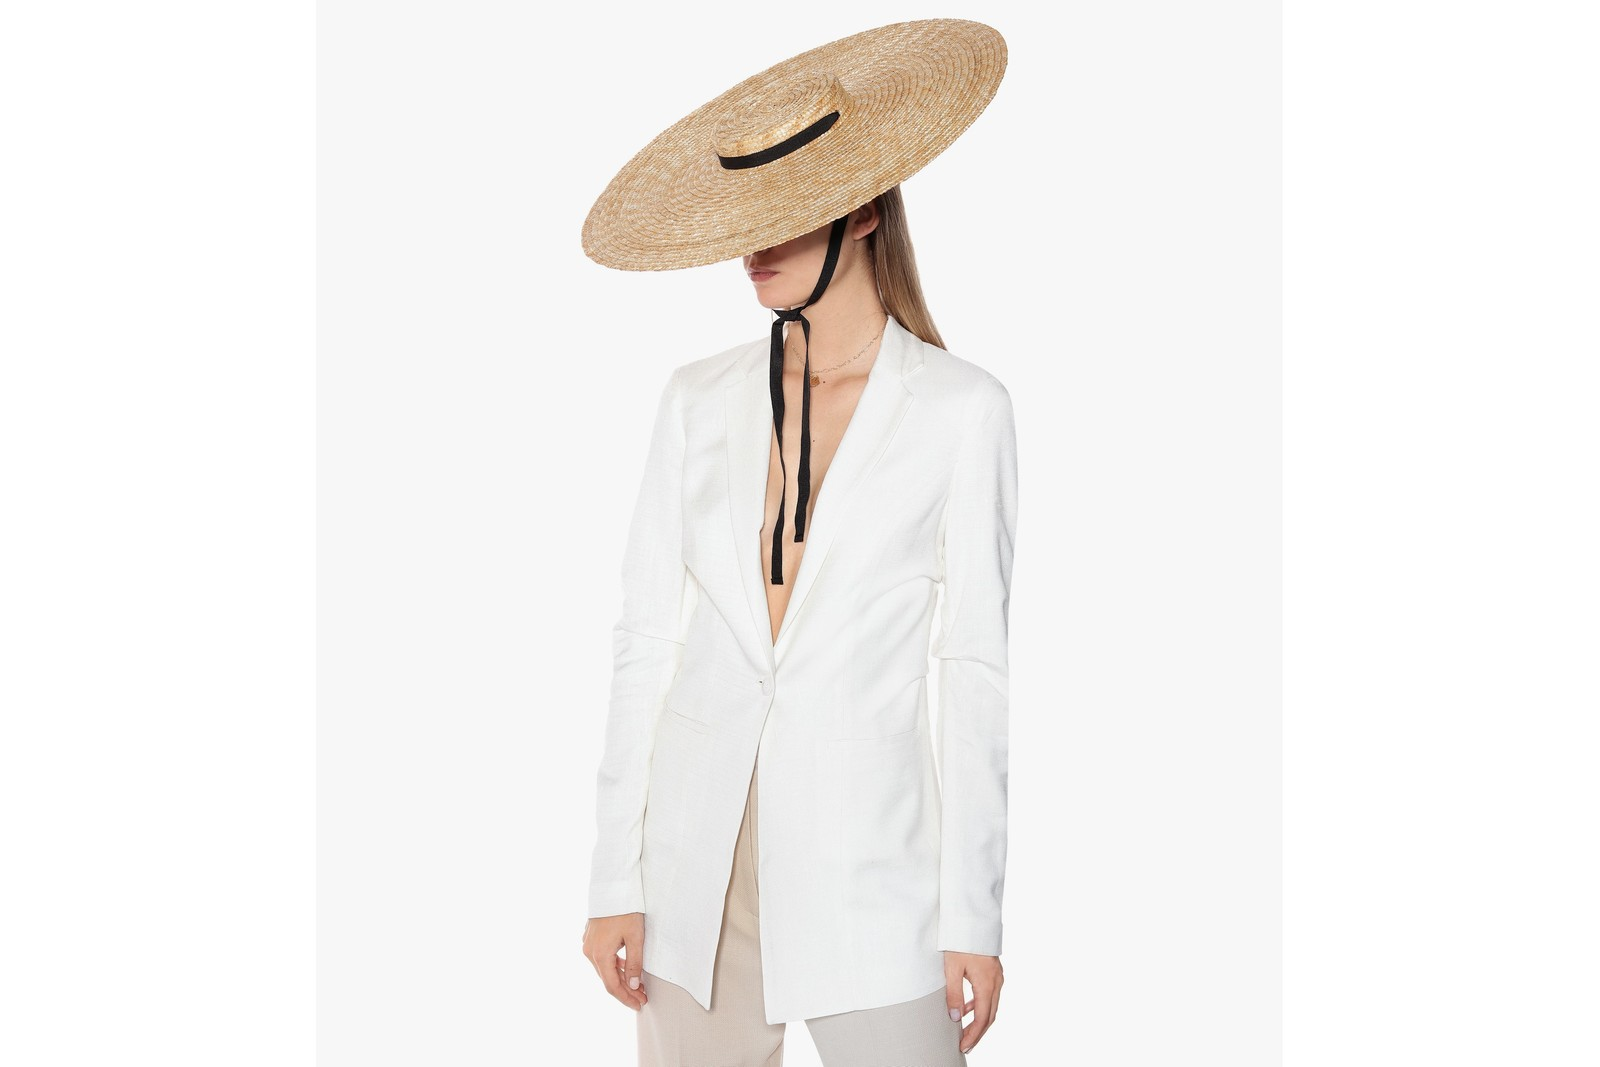 Luxury Straw Hats Saint Laurent Jacquemus Gucci Fashion Accessory